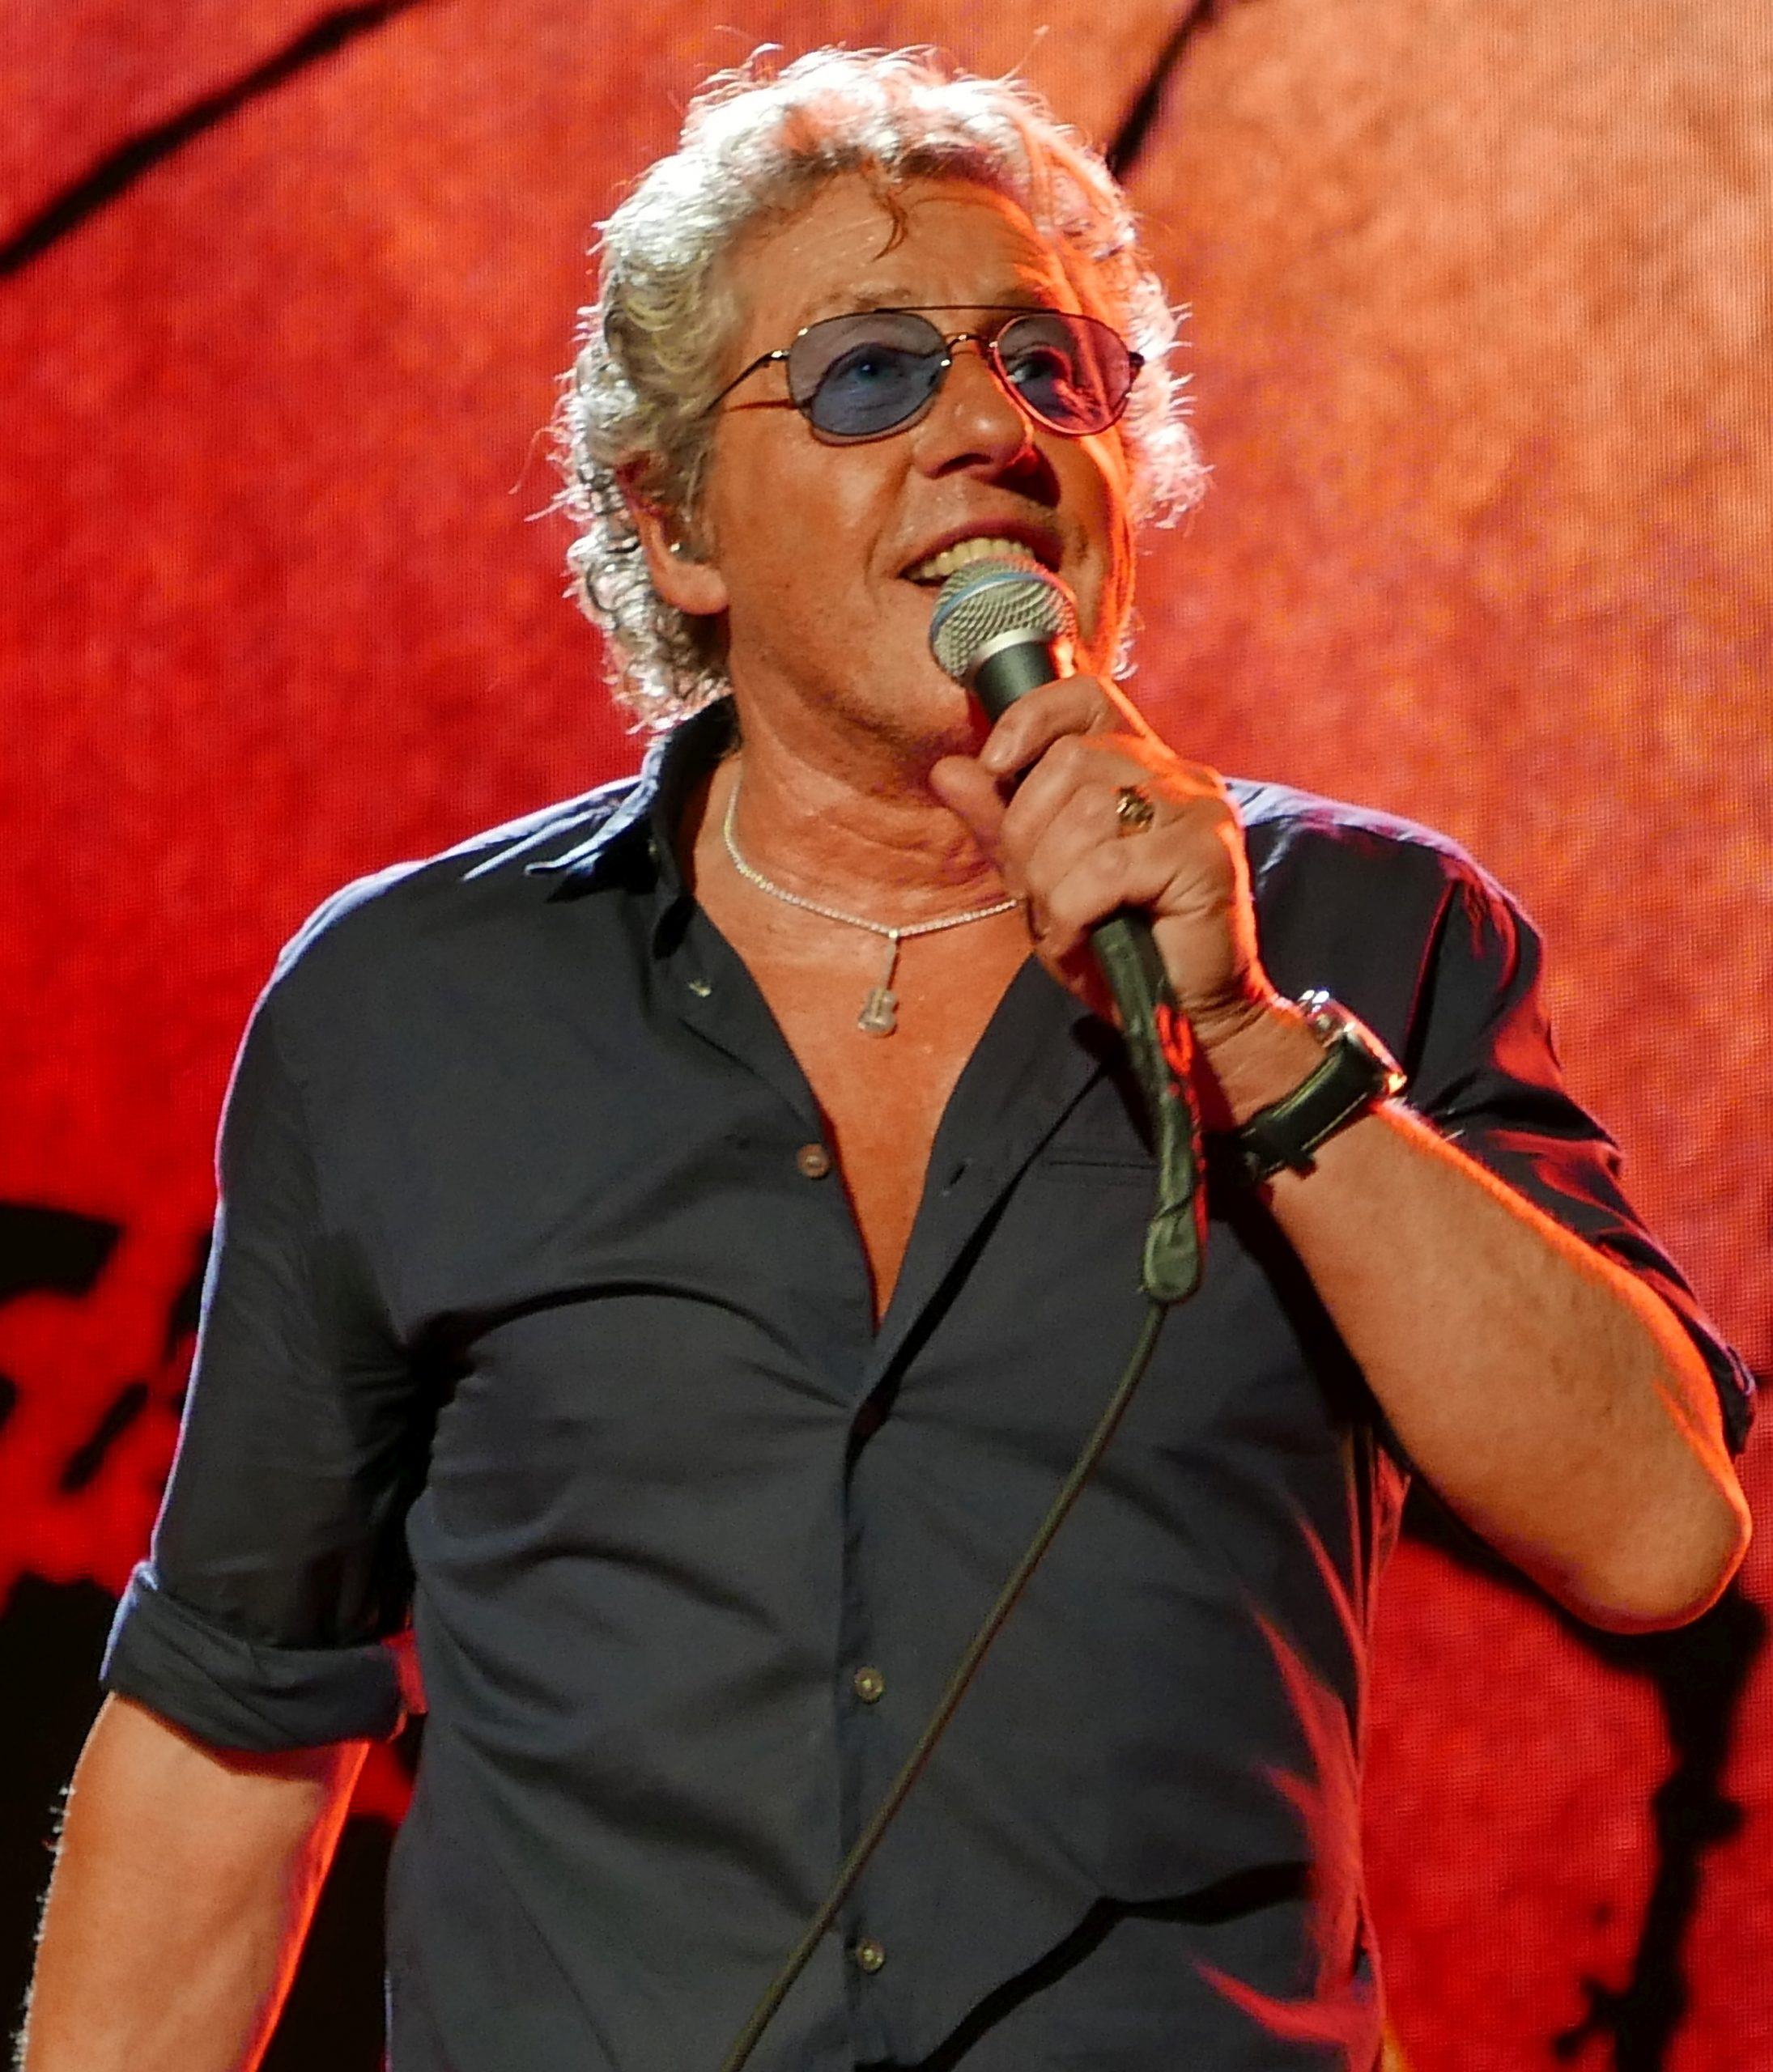 The Who's Roger Daltrey Coming to CMAC in June